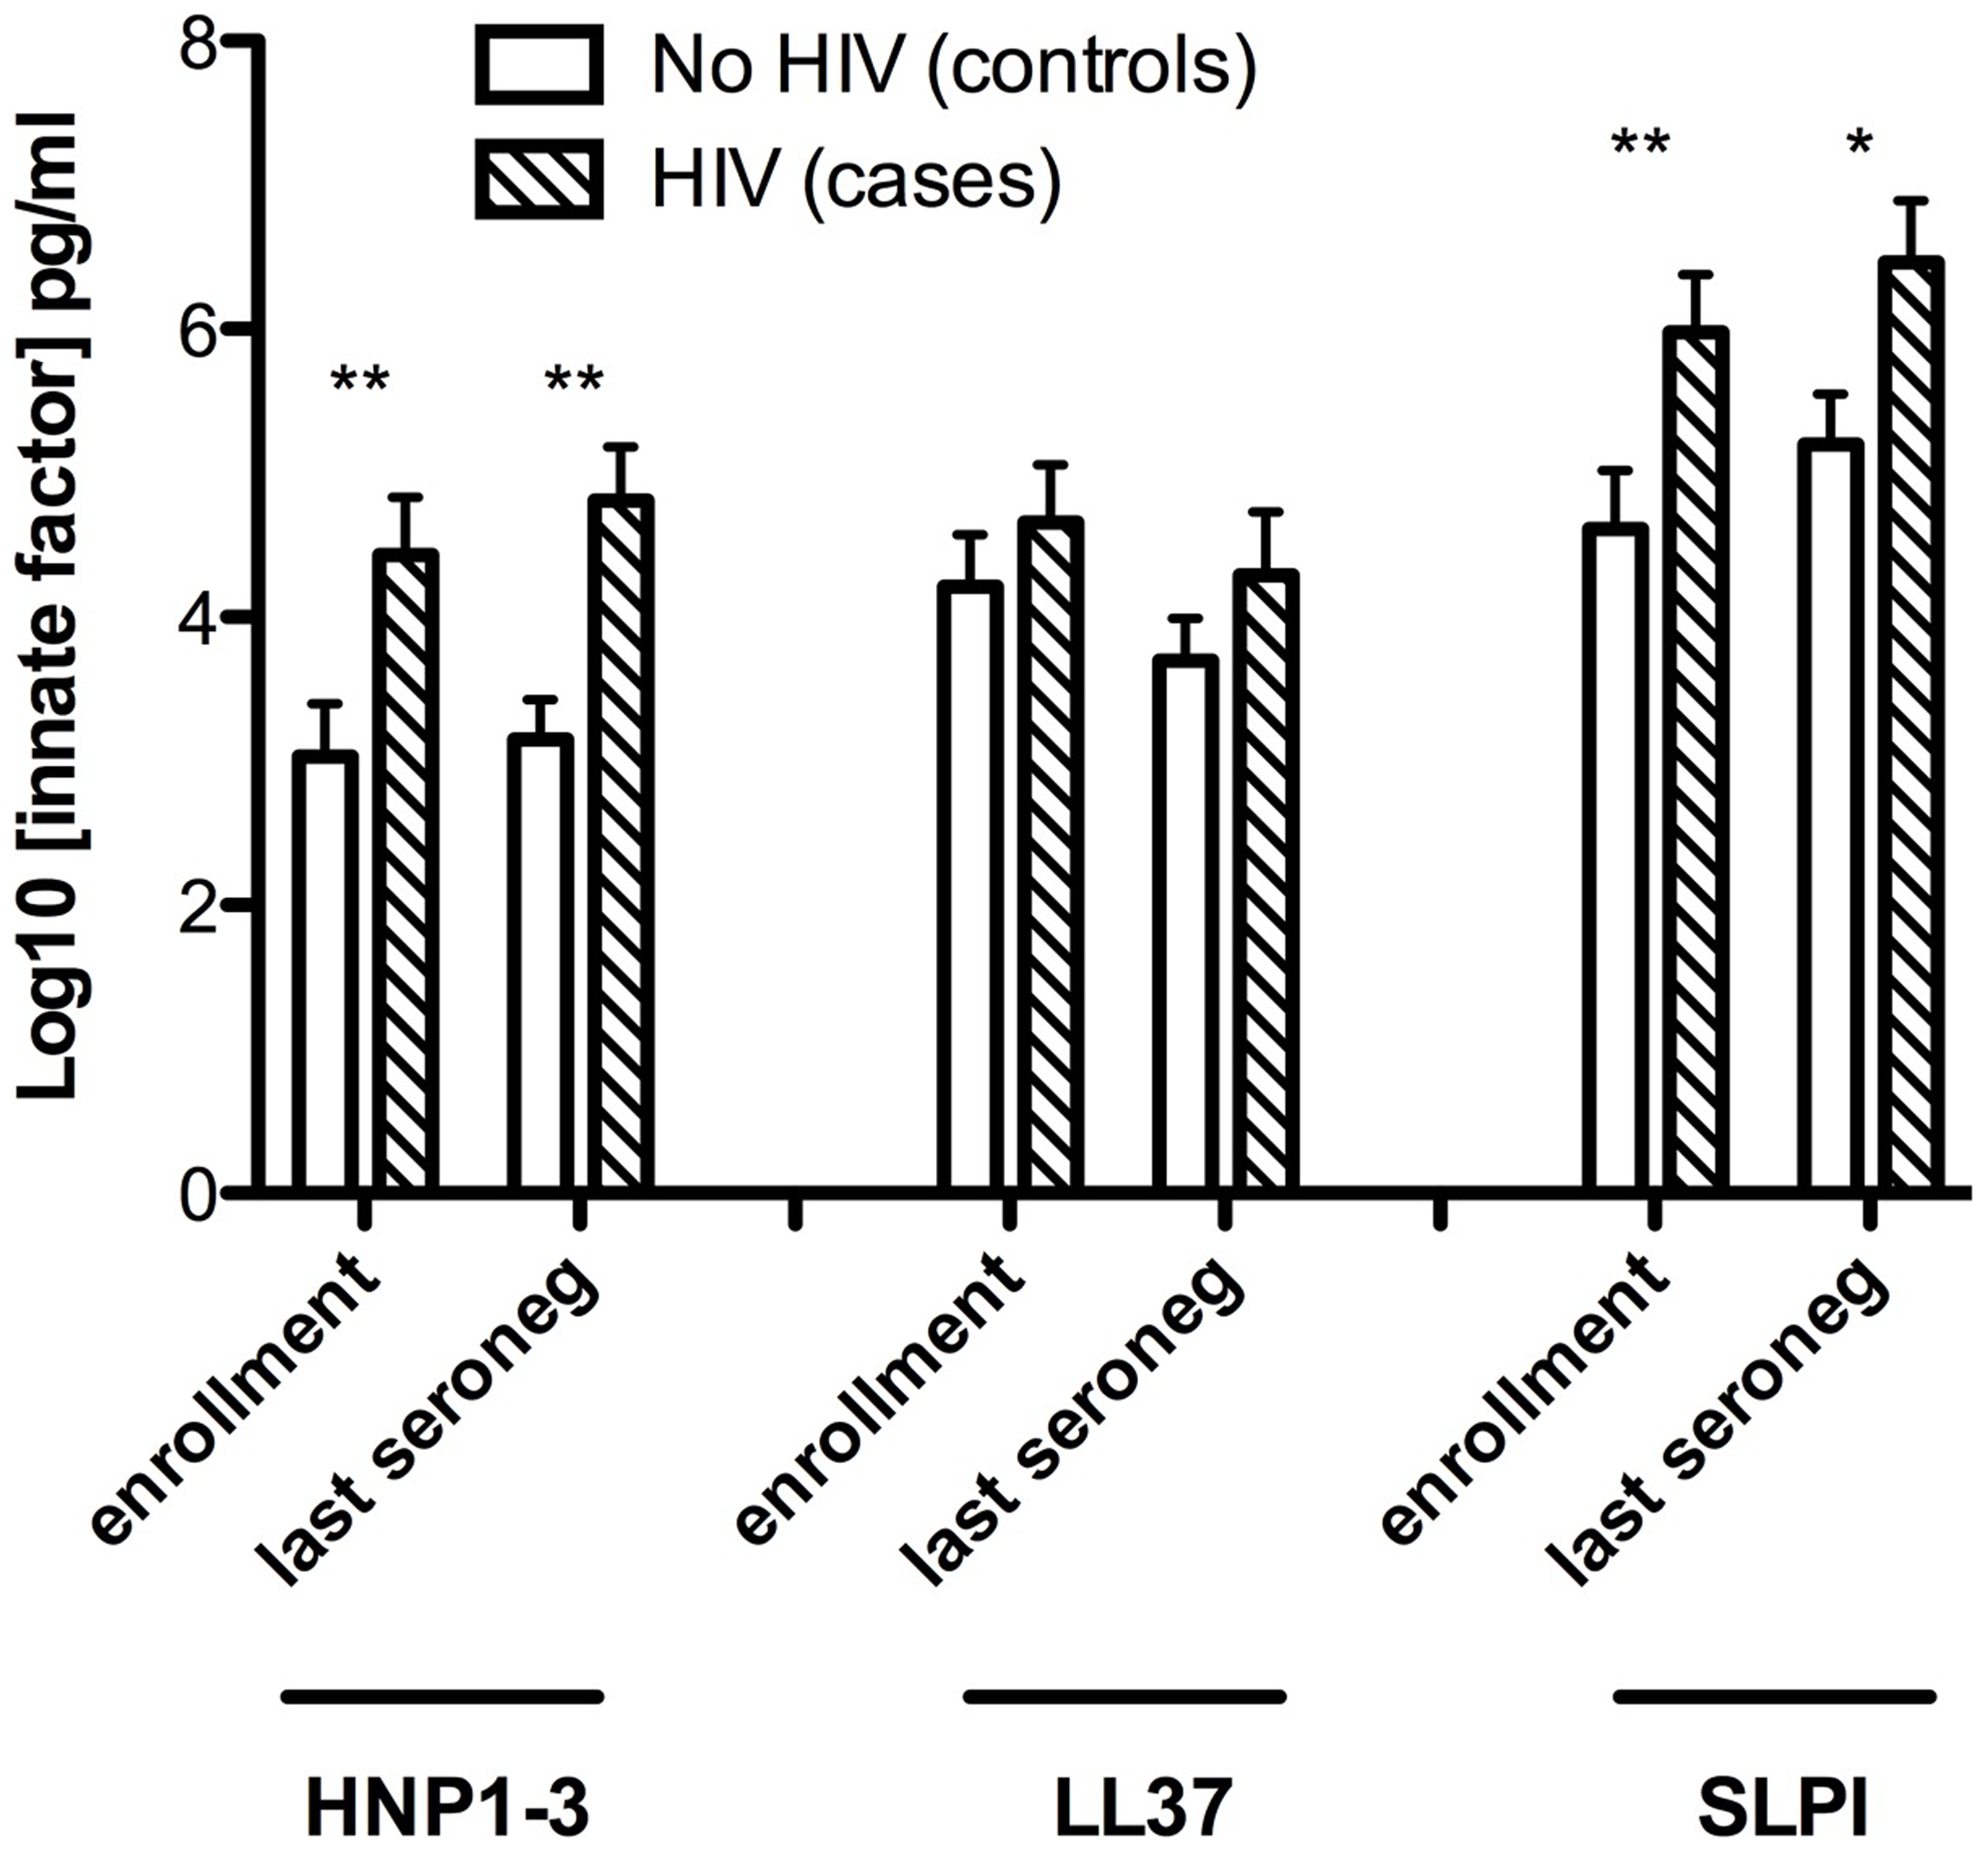 Sub-preputial antimicrobial peptide (AMP) levels and HIV acquisition.